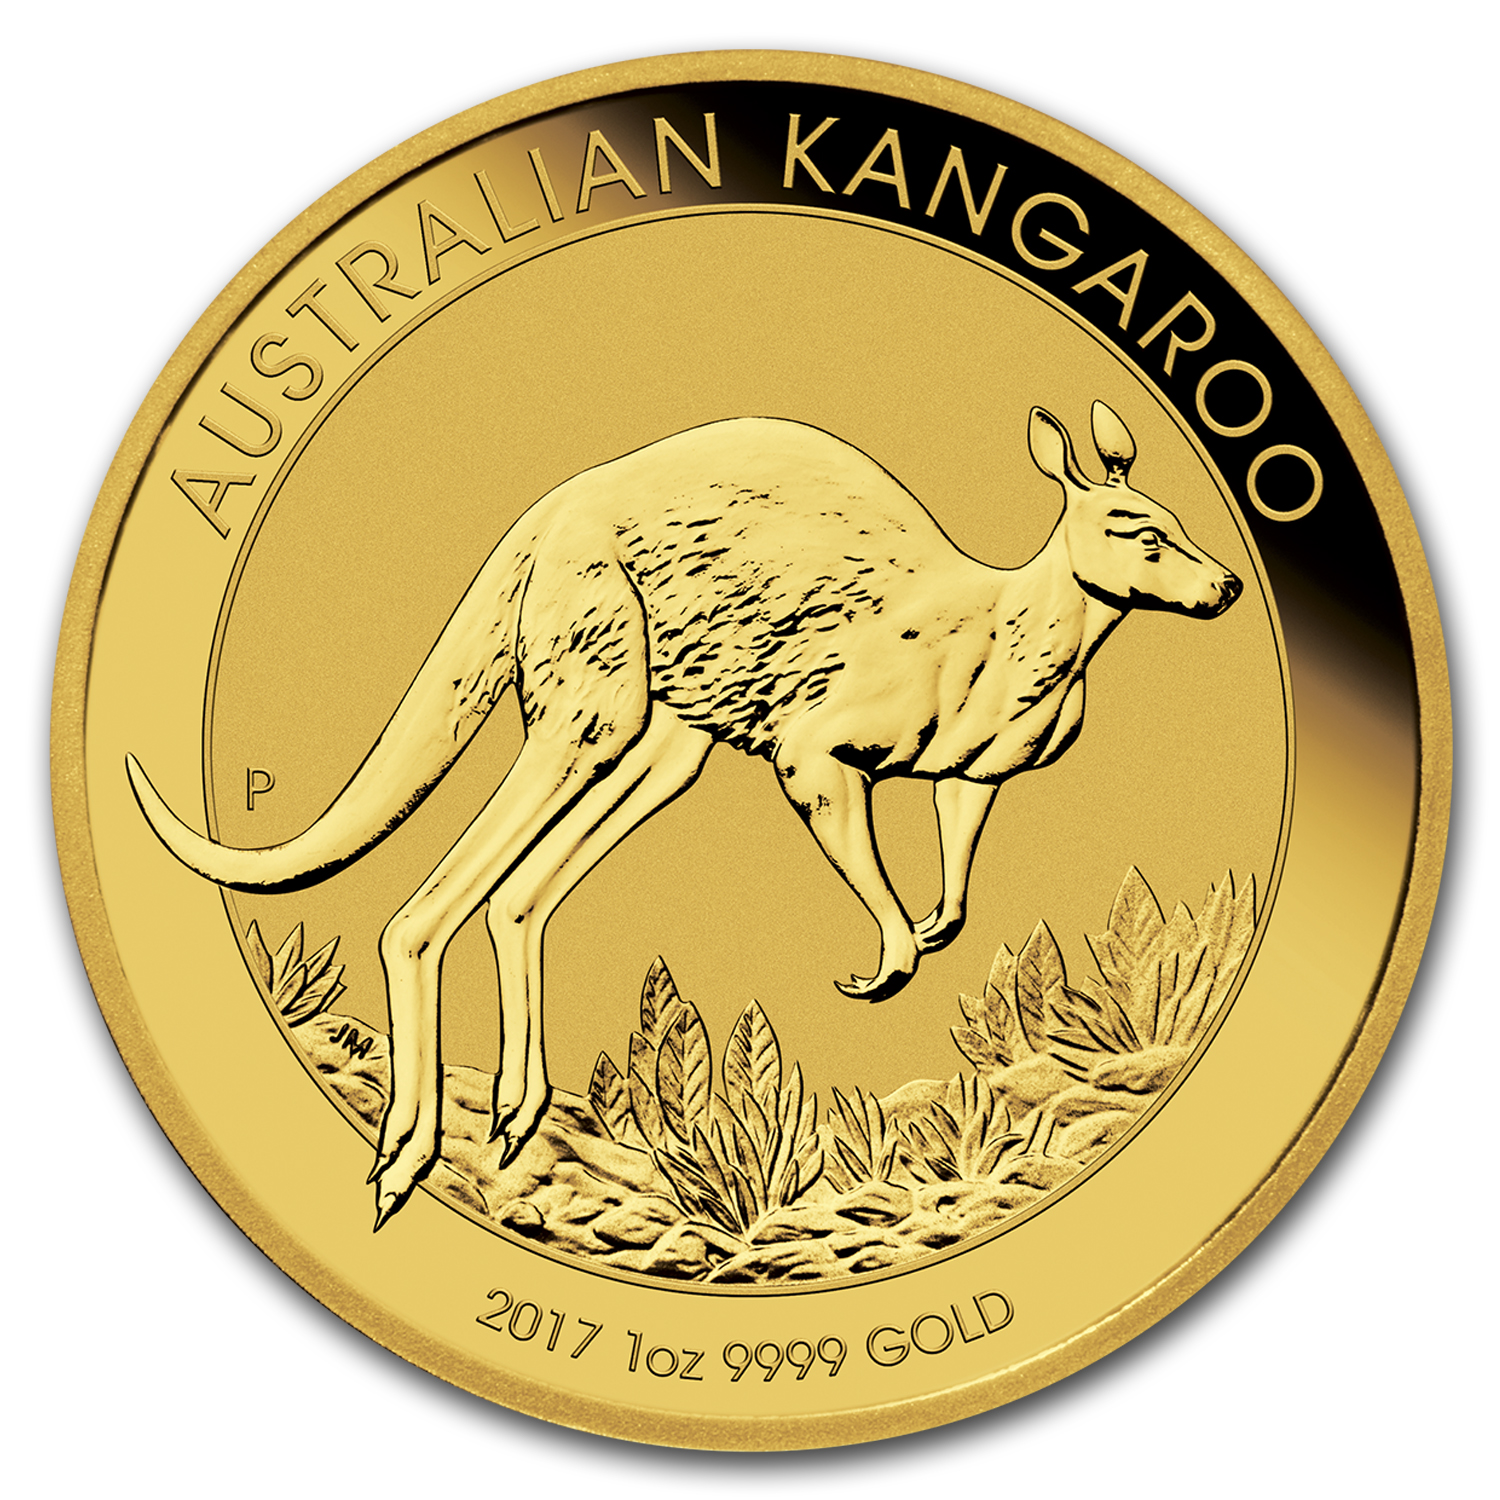 2017 Australia 1 Oz Gold Kangaroo Bu Buy 1 Oz Gold